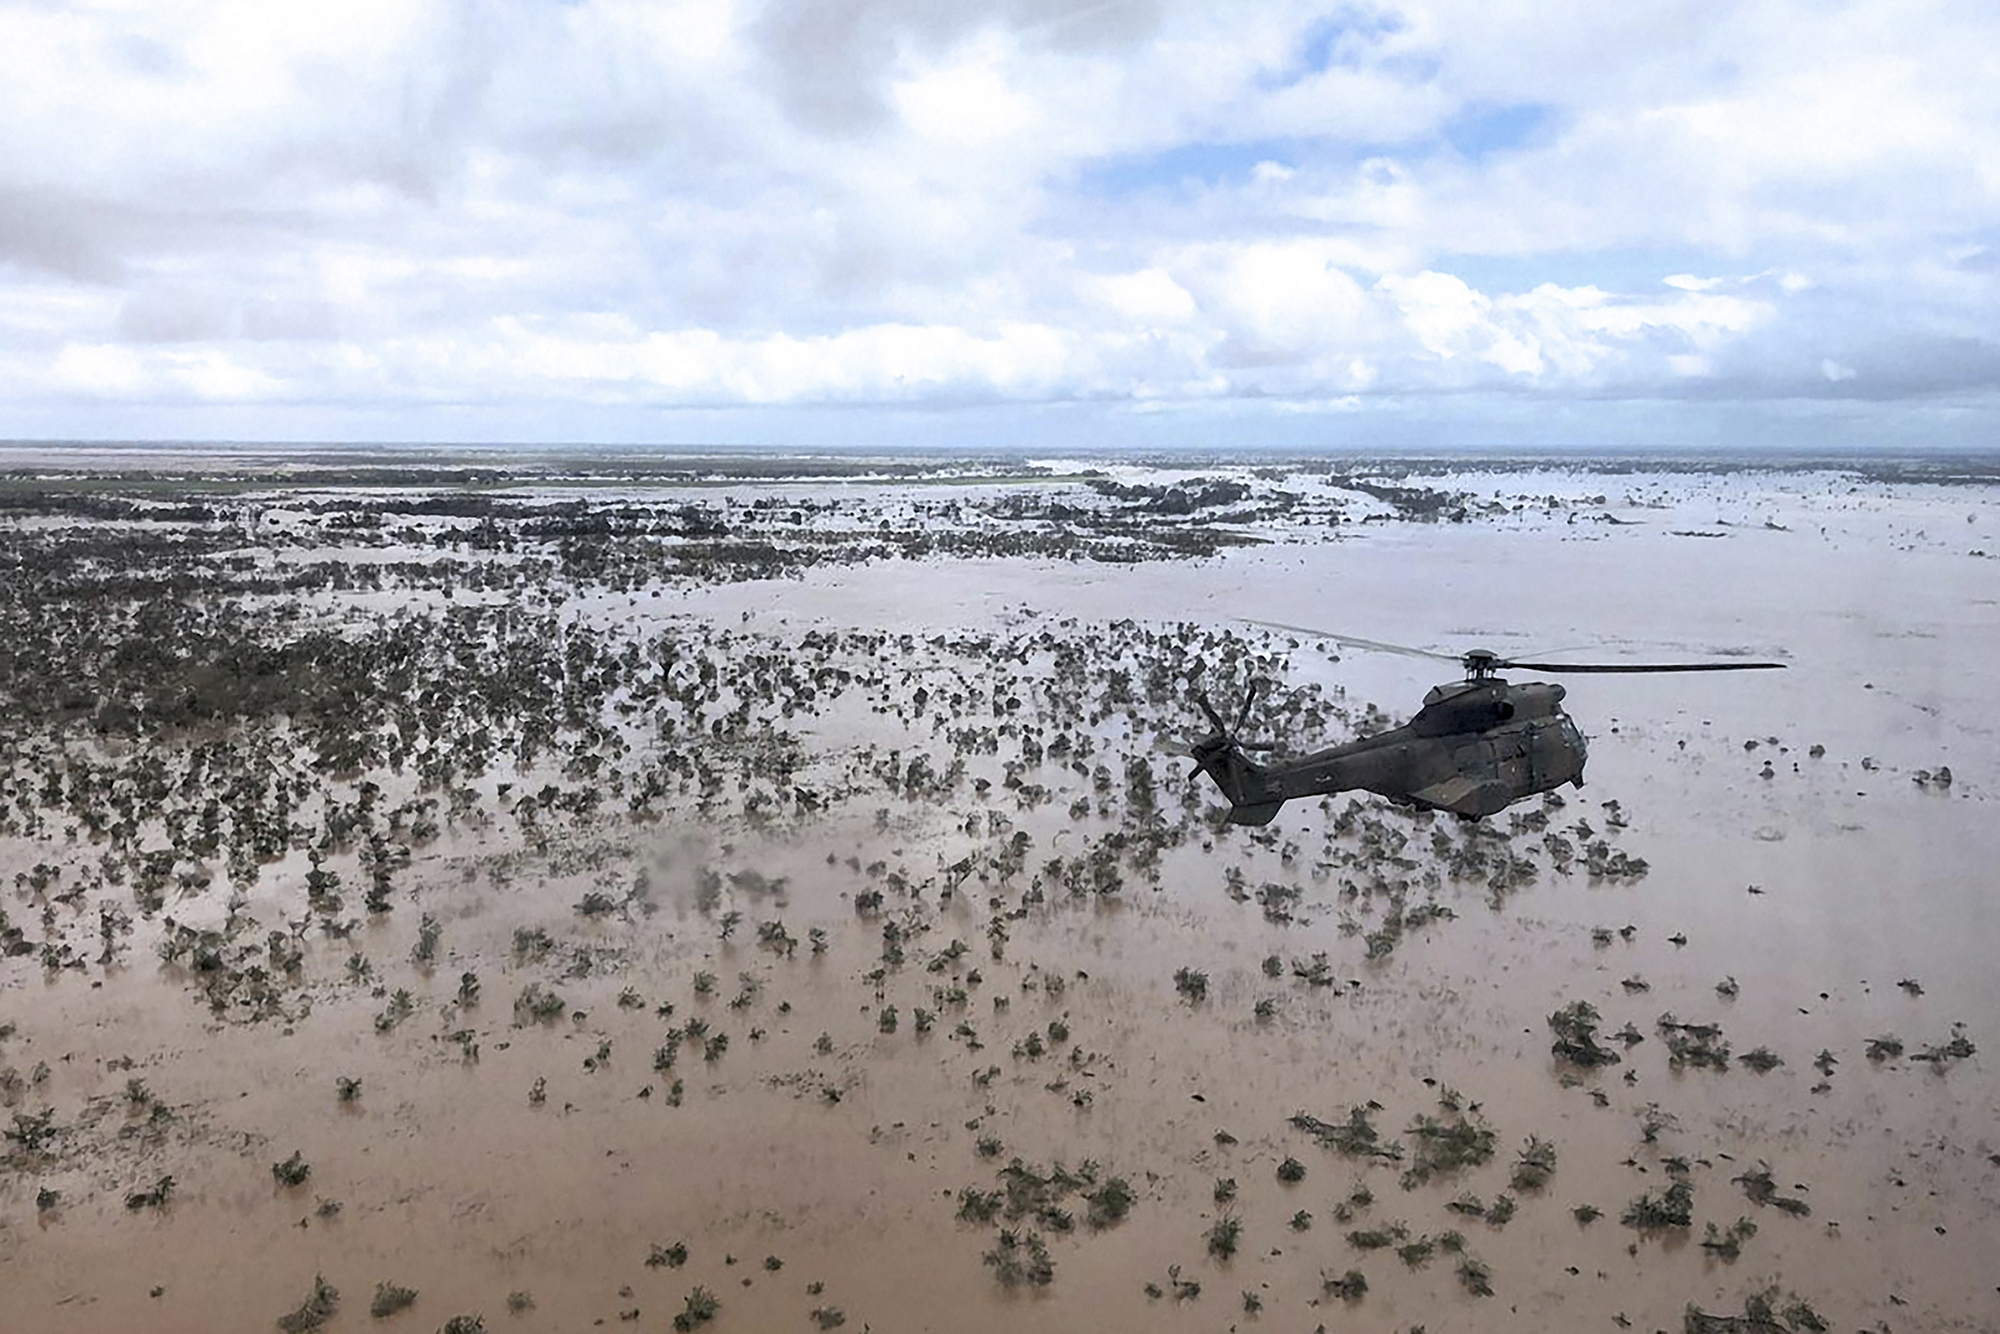 An Oryx helicopter from the South African National Defence Force flies a relief airdrop mission over the flooded area around Beira, Mozambique, on March 20. International aid agencies raced to rescue survivors and meet spiraling humanitarian needs in three countries battered by Cyclone Idai. (Maryke Vermaak/AFP/Getty Images)